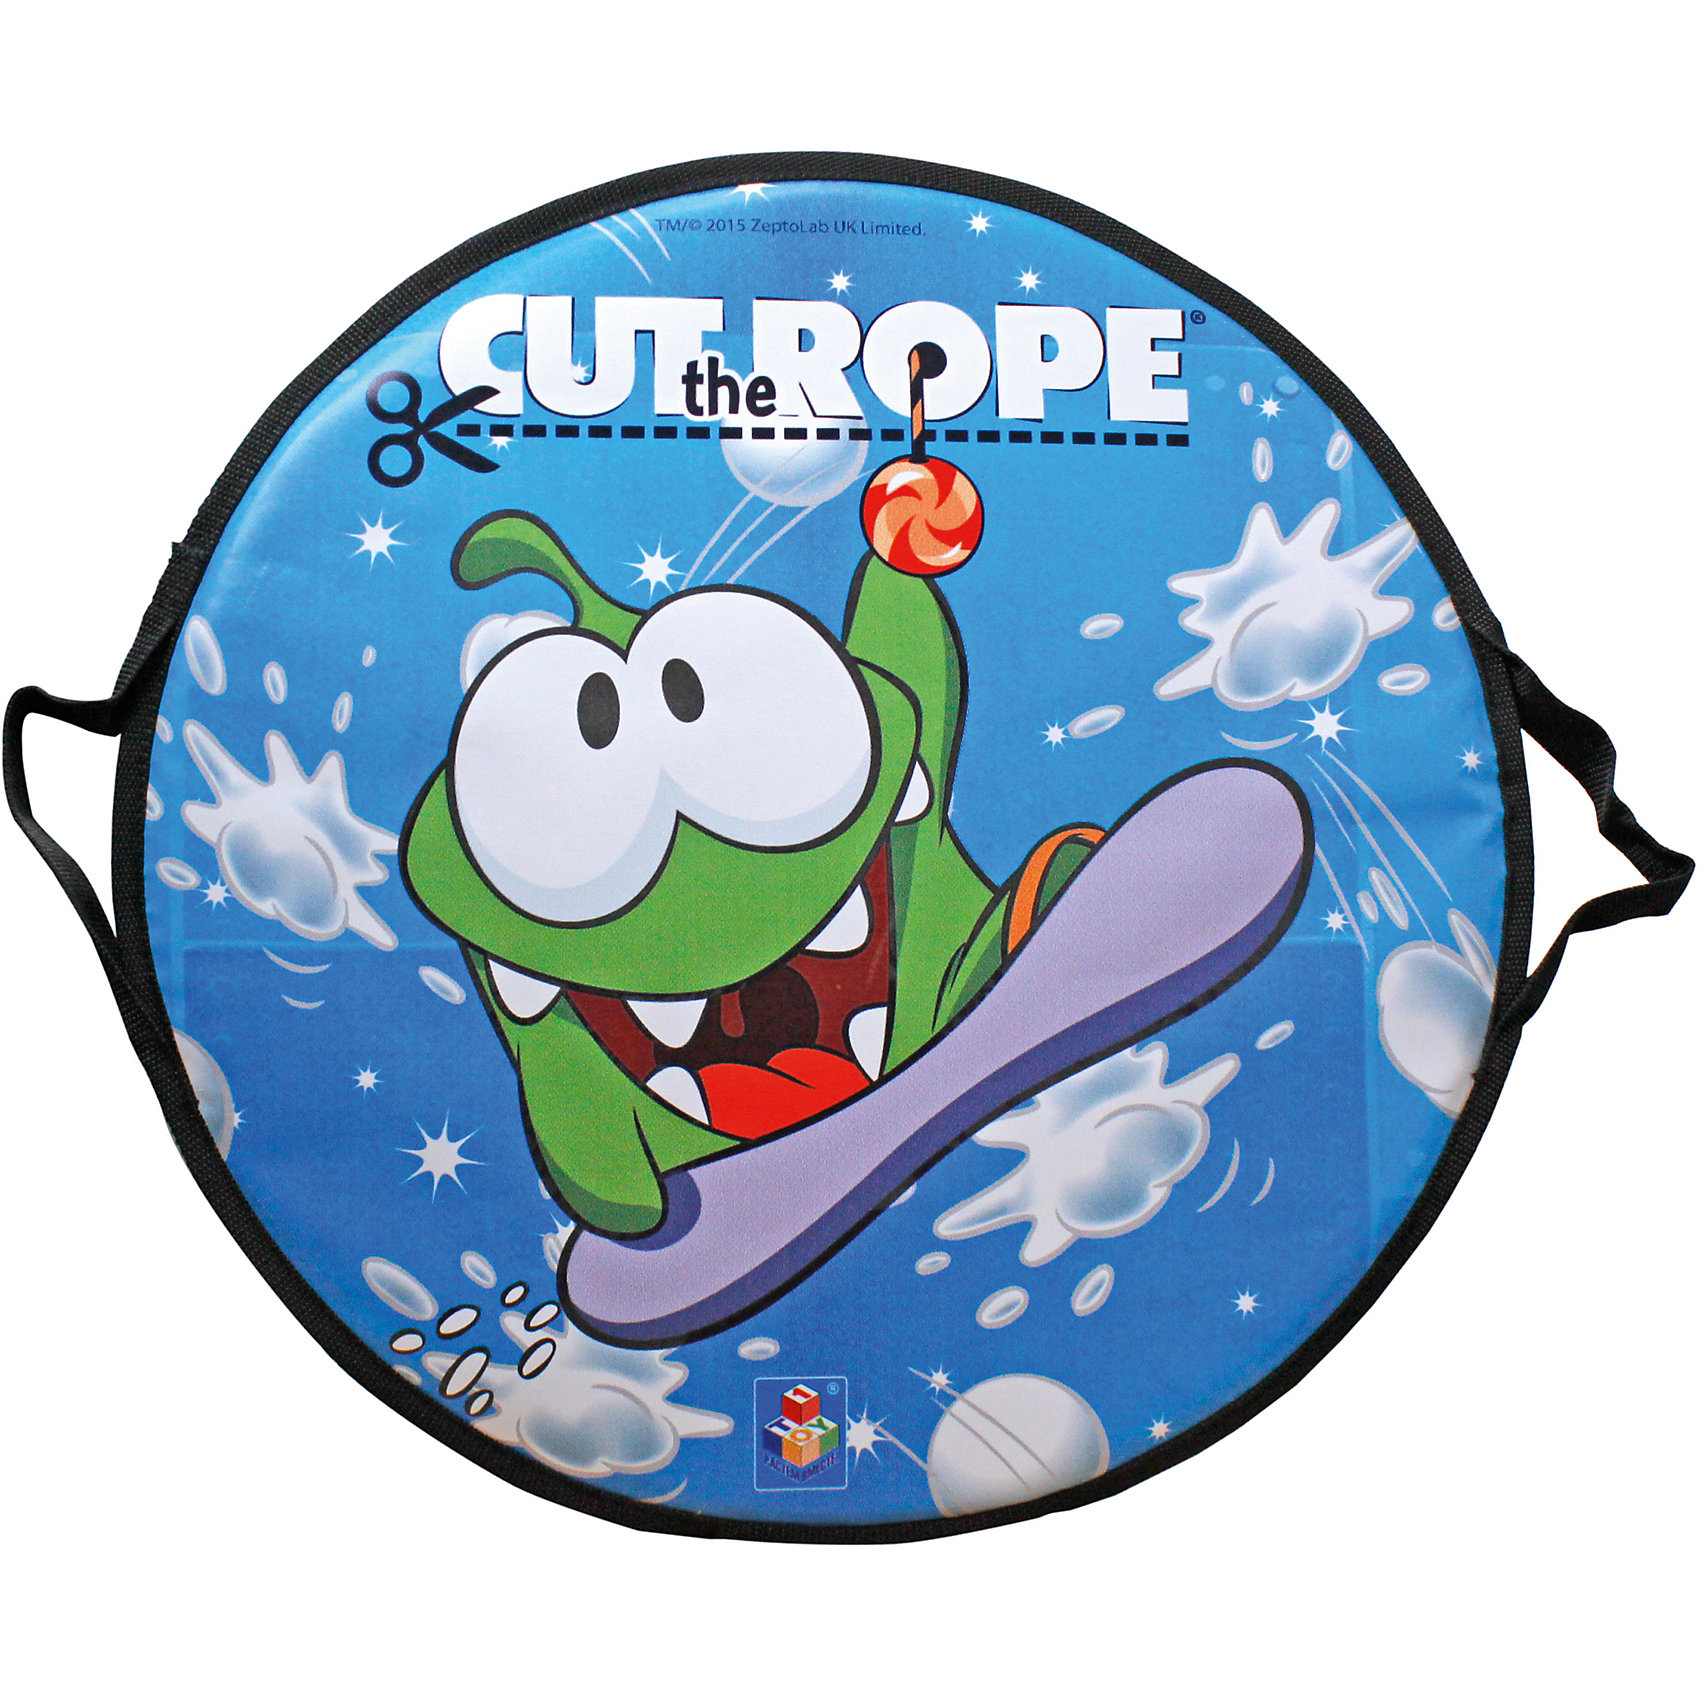 Ледянка, 52 см, круглая,  Cut the Rope,  1toy, 1toy